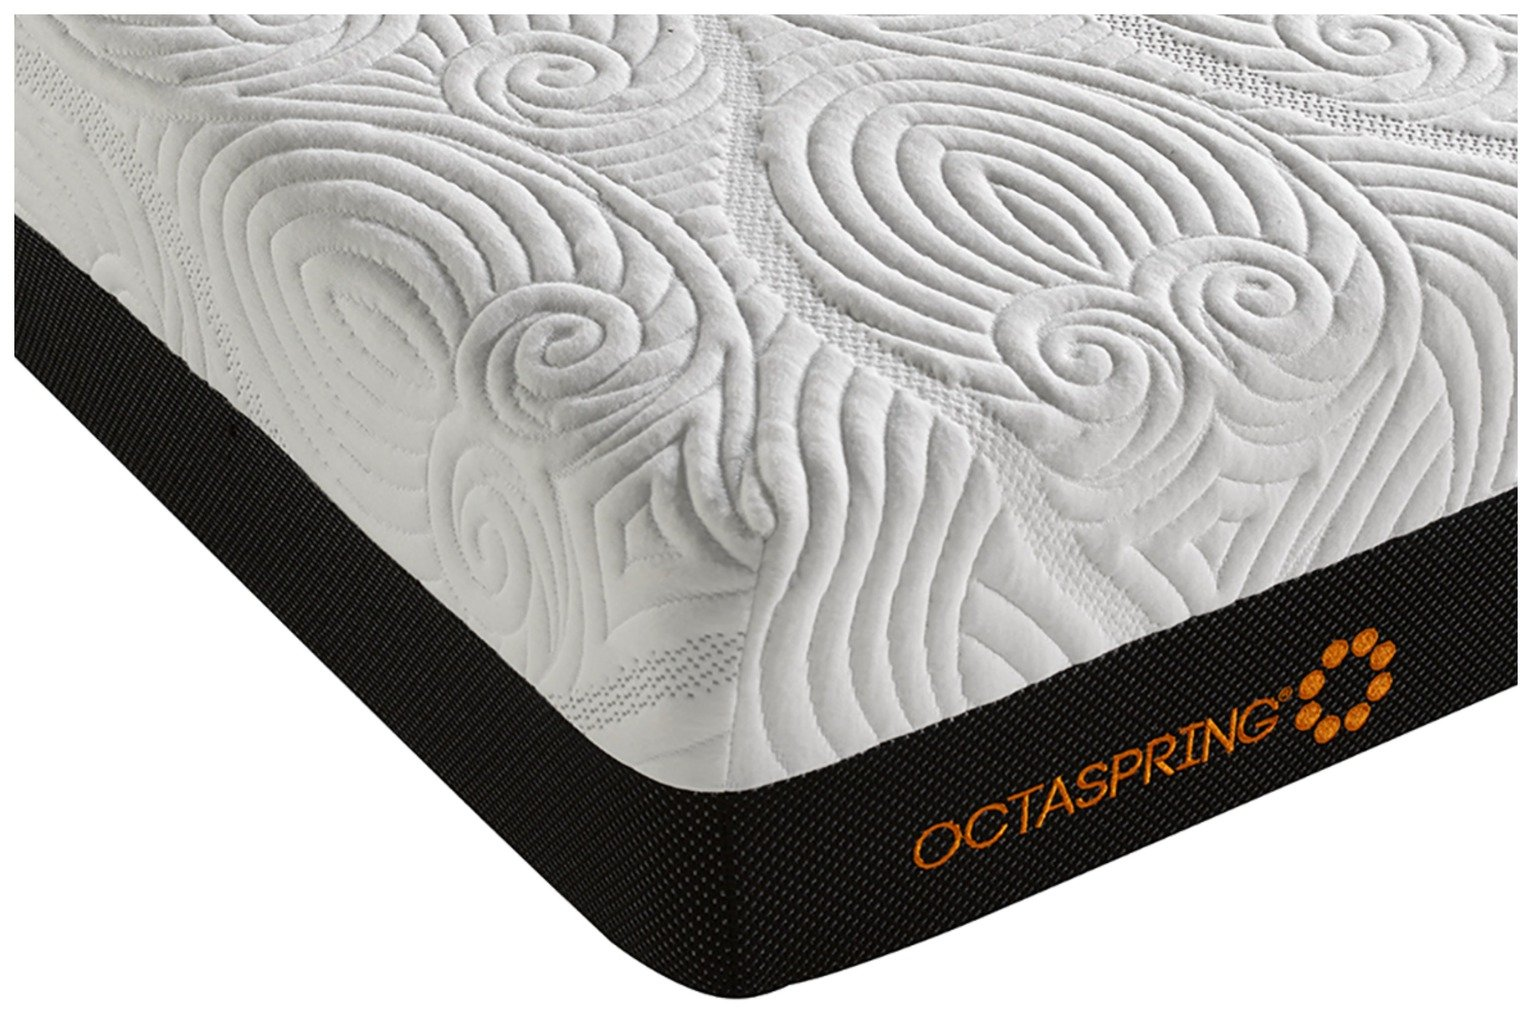 Dormeo Octaspring Levanto Kingsize Mattress